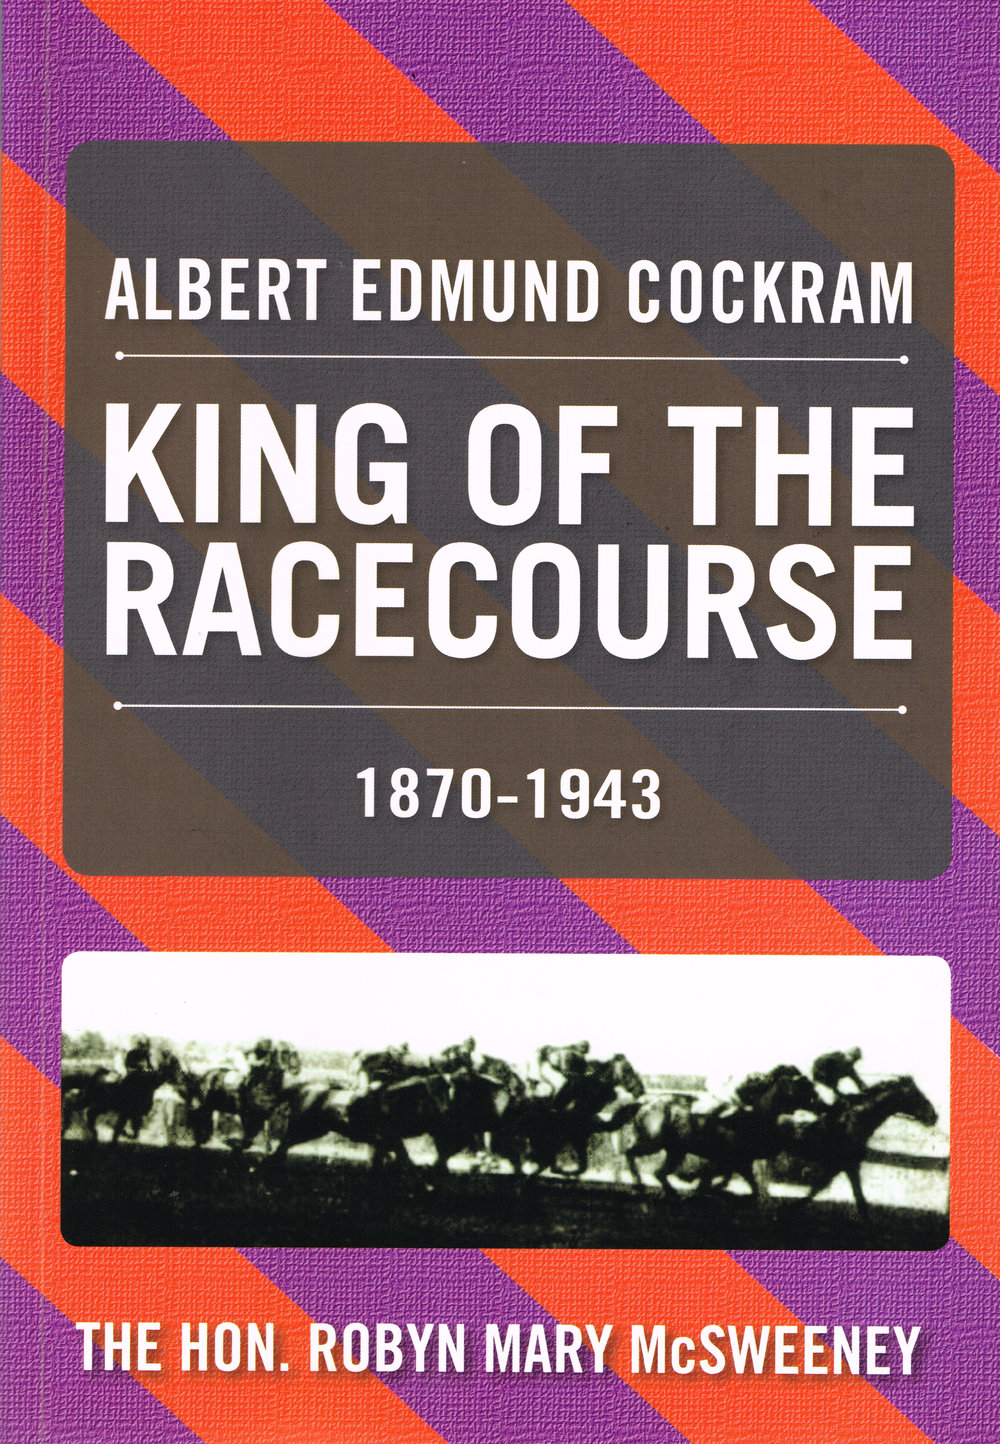 King_of_the Racecourse.jpg